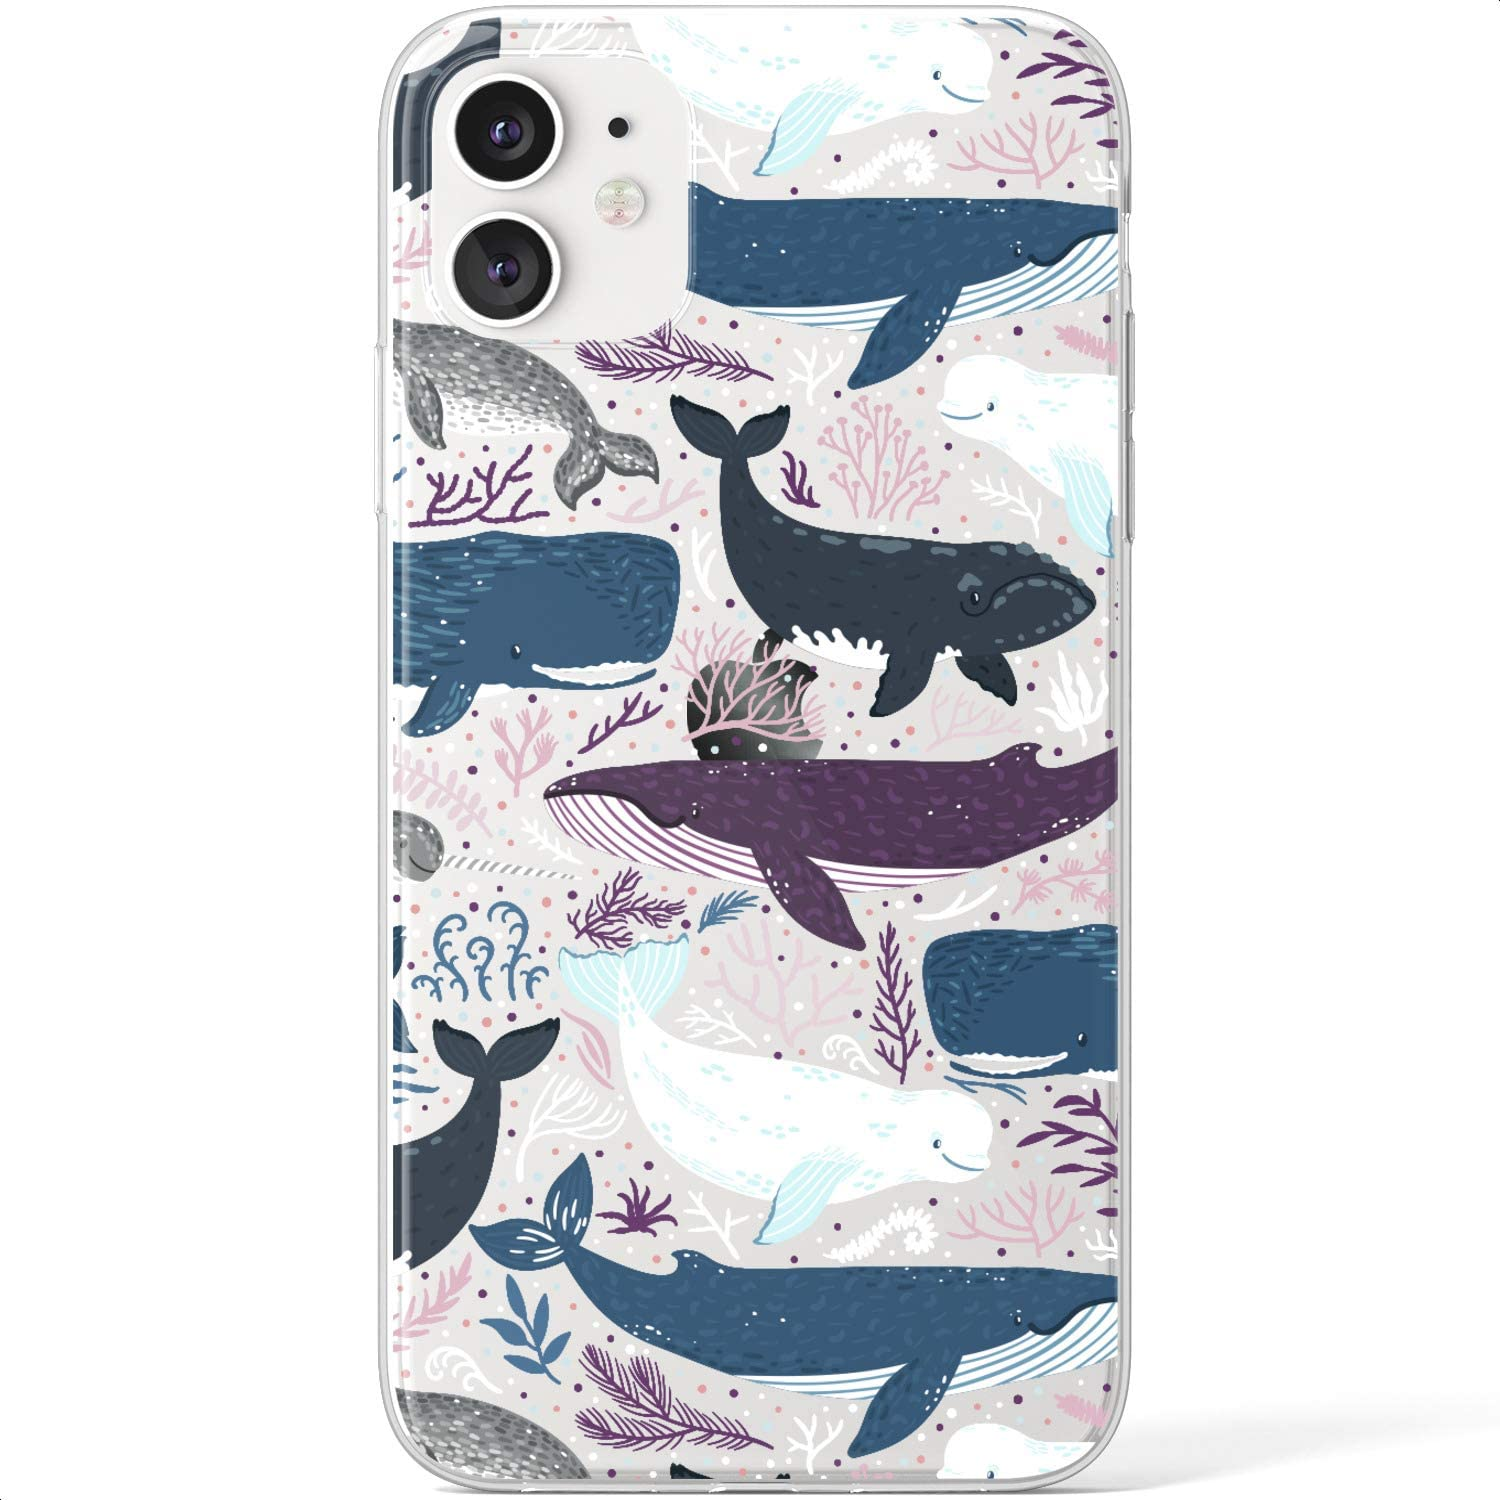 Mertak Clear Case Compatible with iPhone 12 Pro Max Mini 11 SE 10 Xr Xs 8 Plus 7 6s 5s Cartoon Whales Flexible Cute Ocean TPU Beluga Design Fish Silicone Cover Slim Lightweight Protective